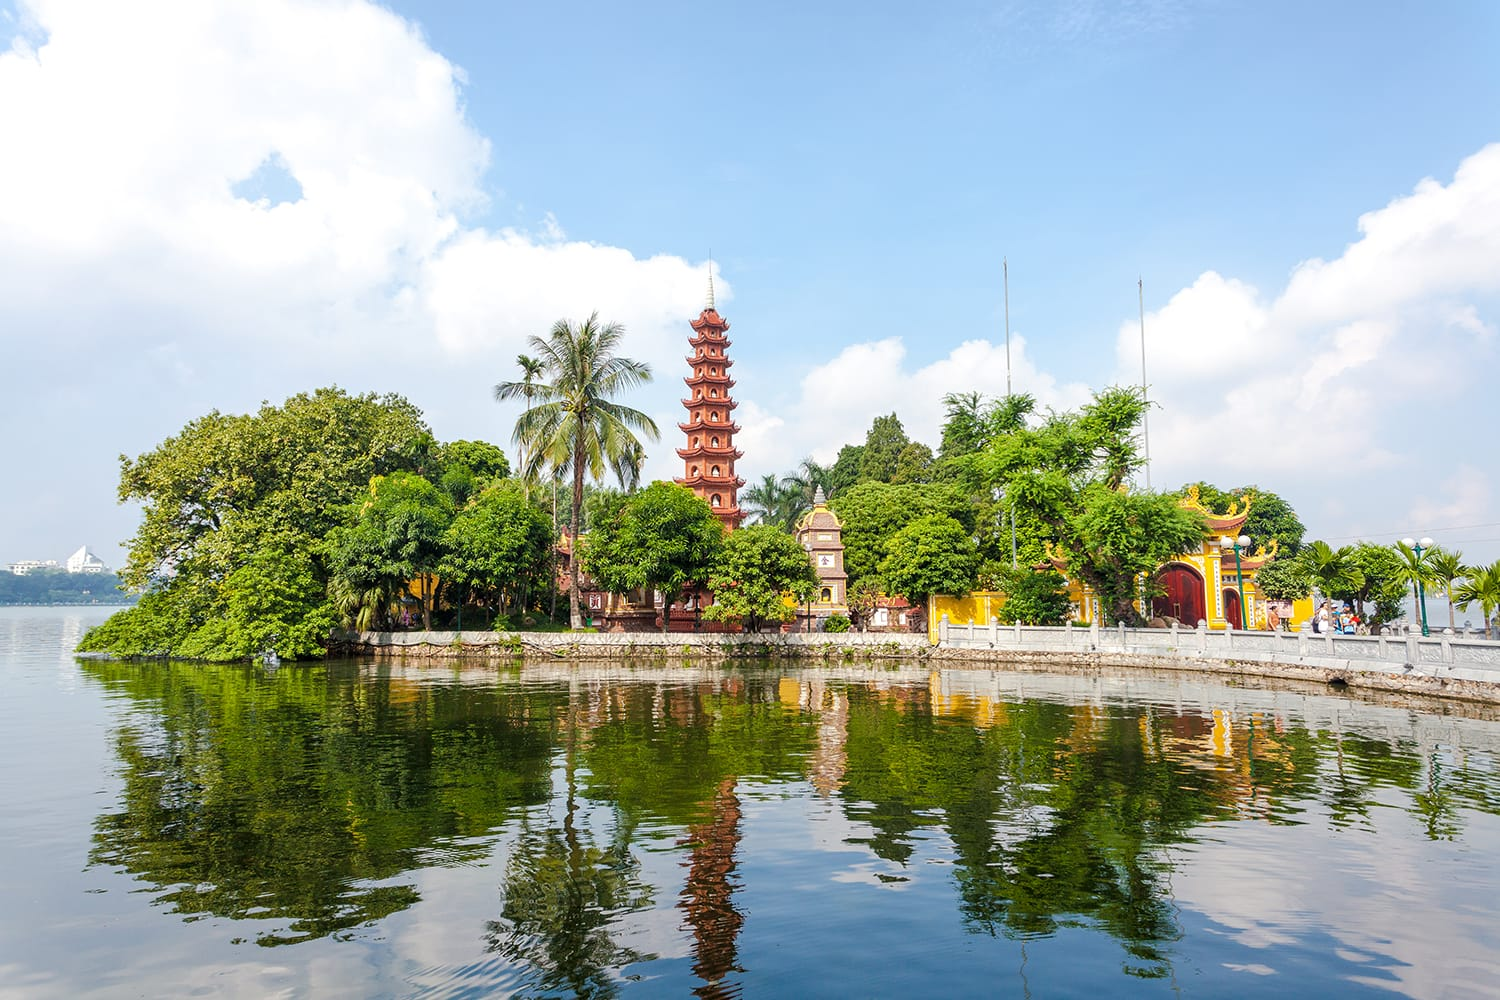 Tran Quoc Pagoda,the oldest Buddhist temple in Hanoi, is located on a small island near the southeastern shore of Hanoi's West Lake, Vietnam